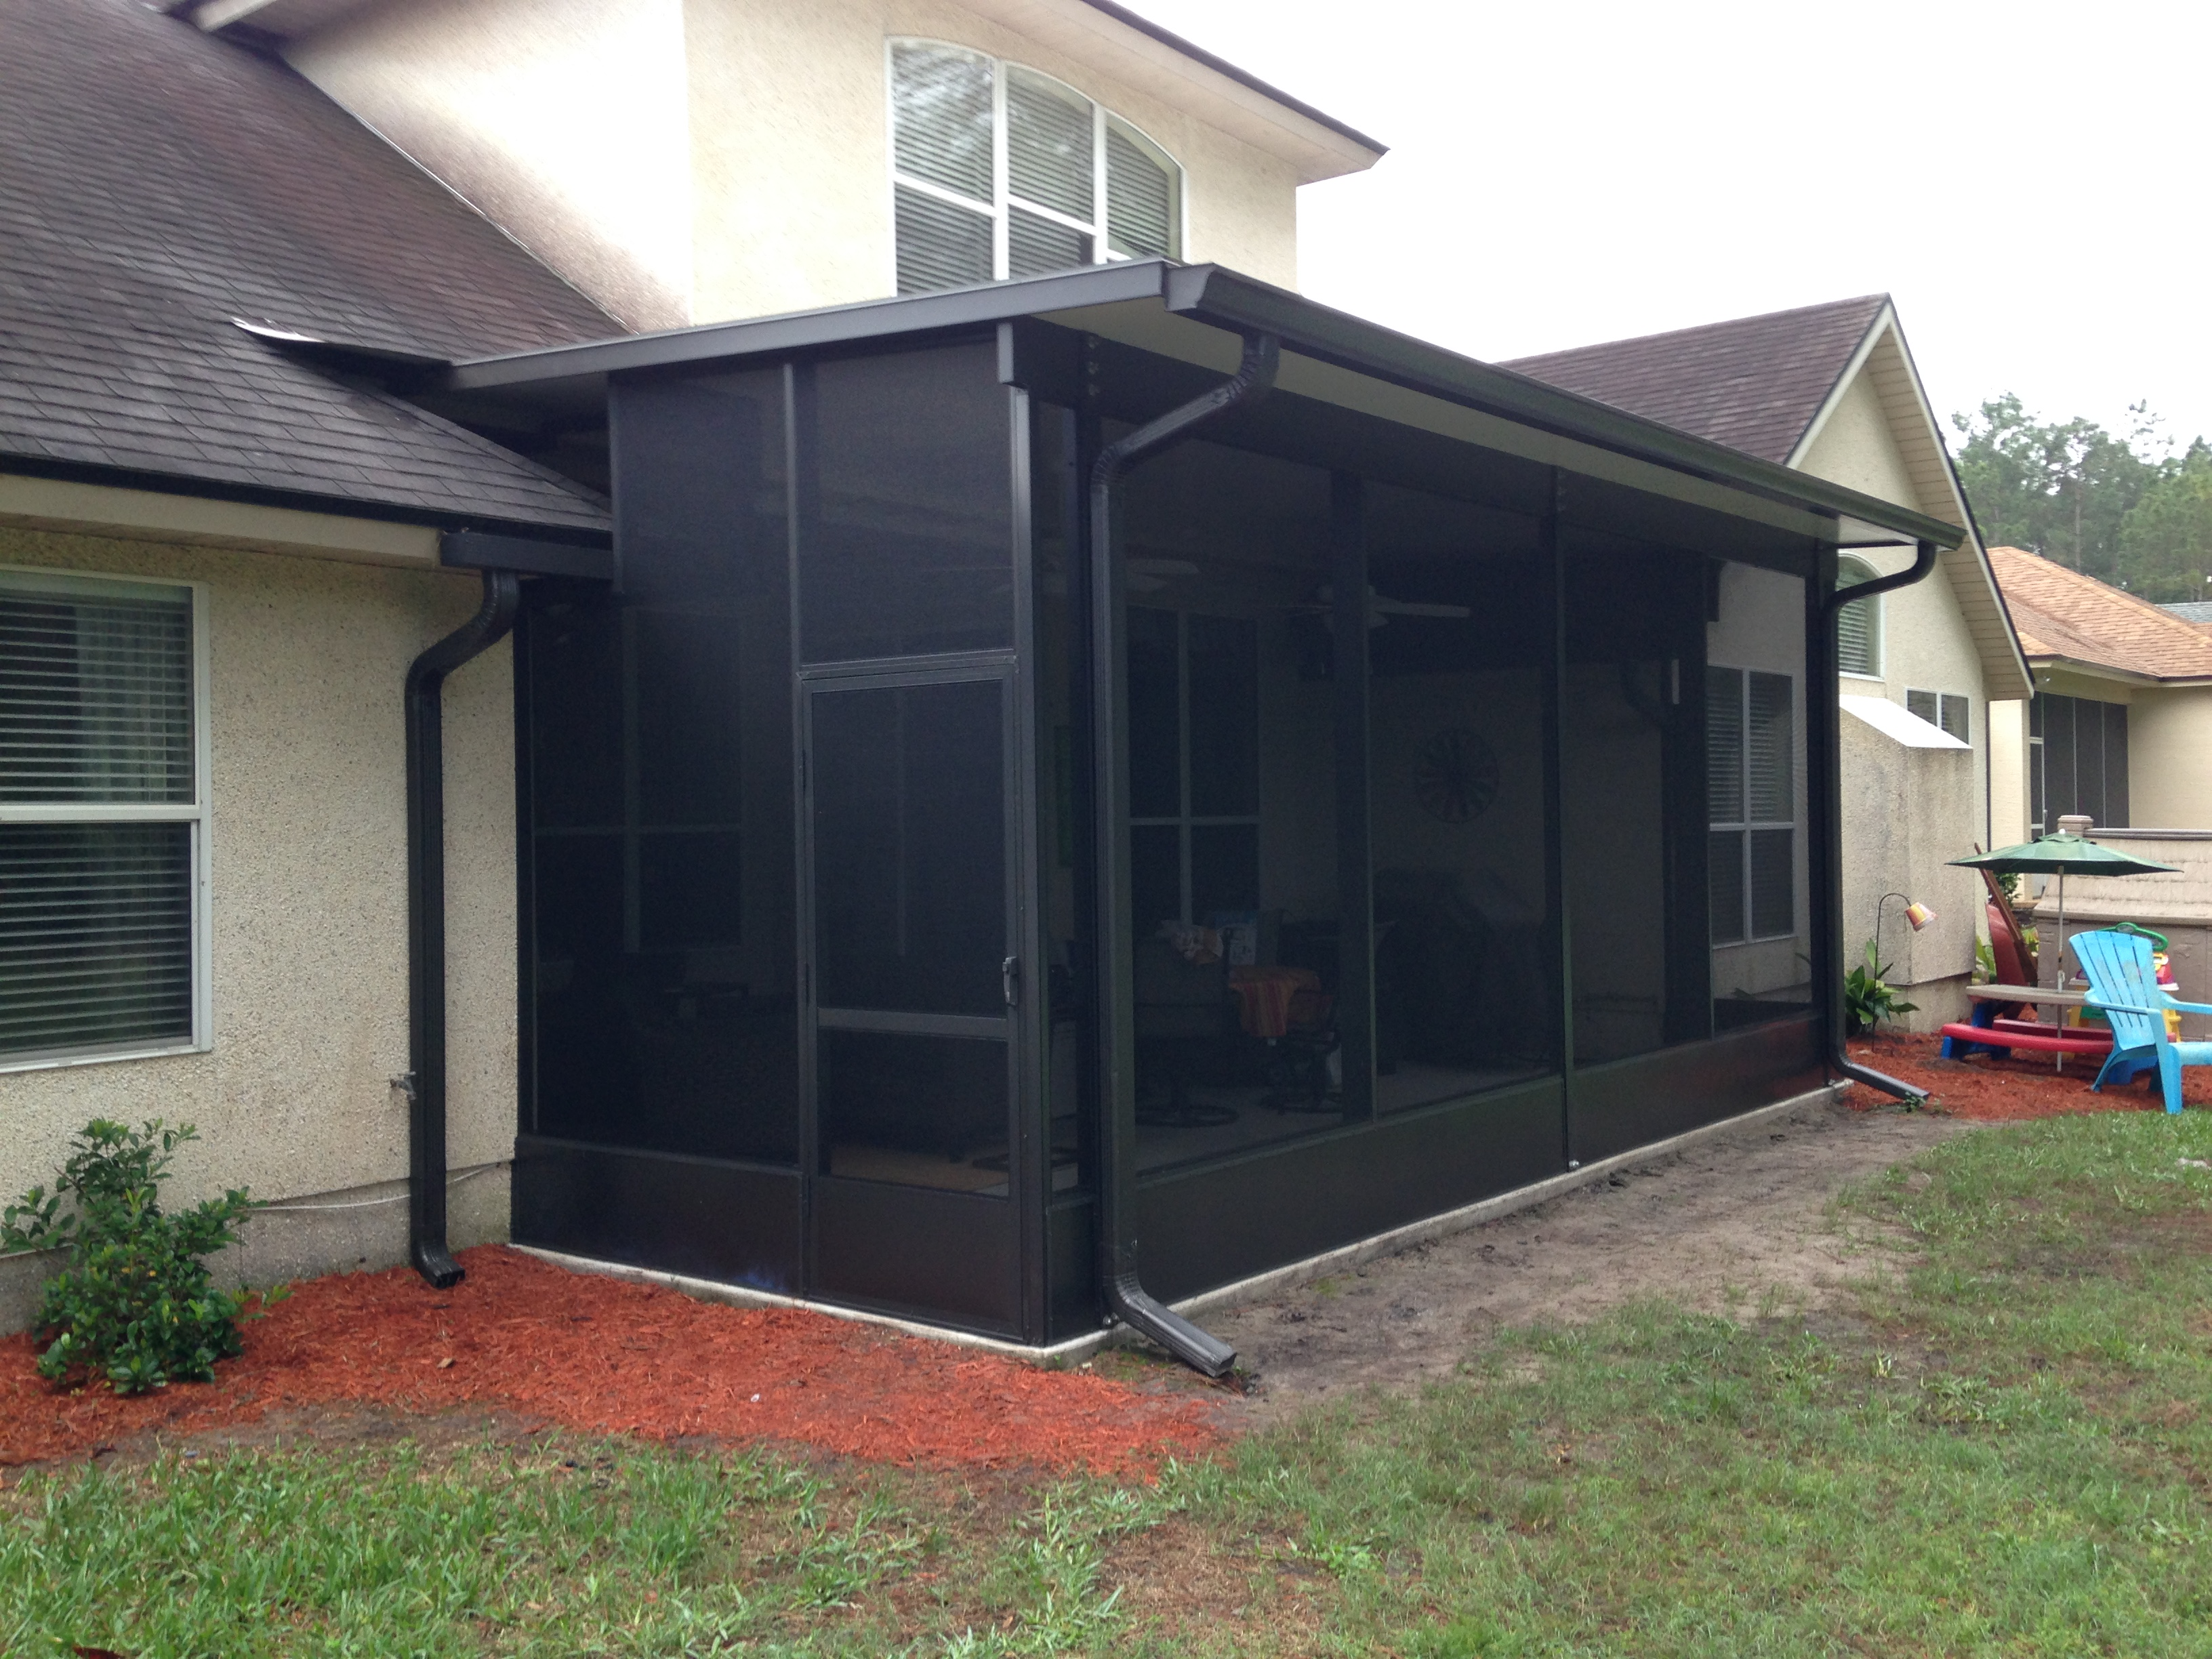 screen room harless kms systems exterior home improvement